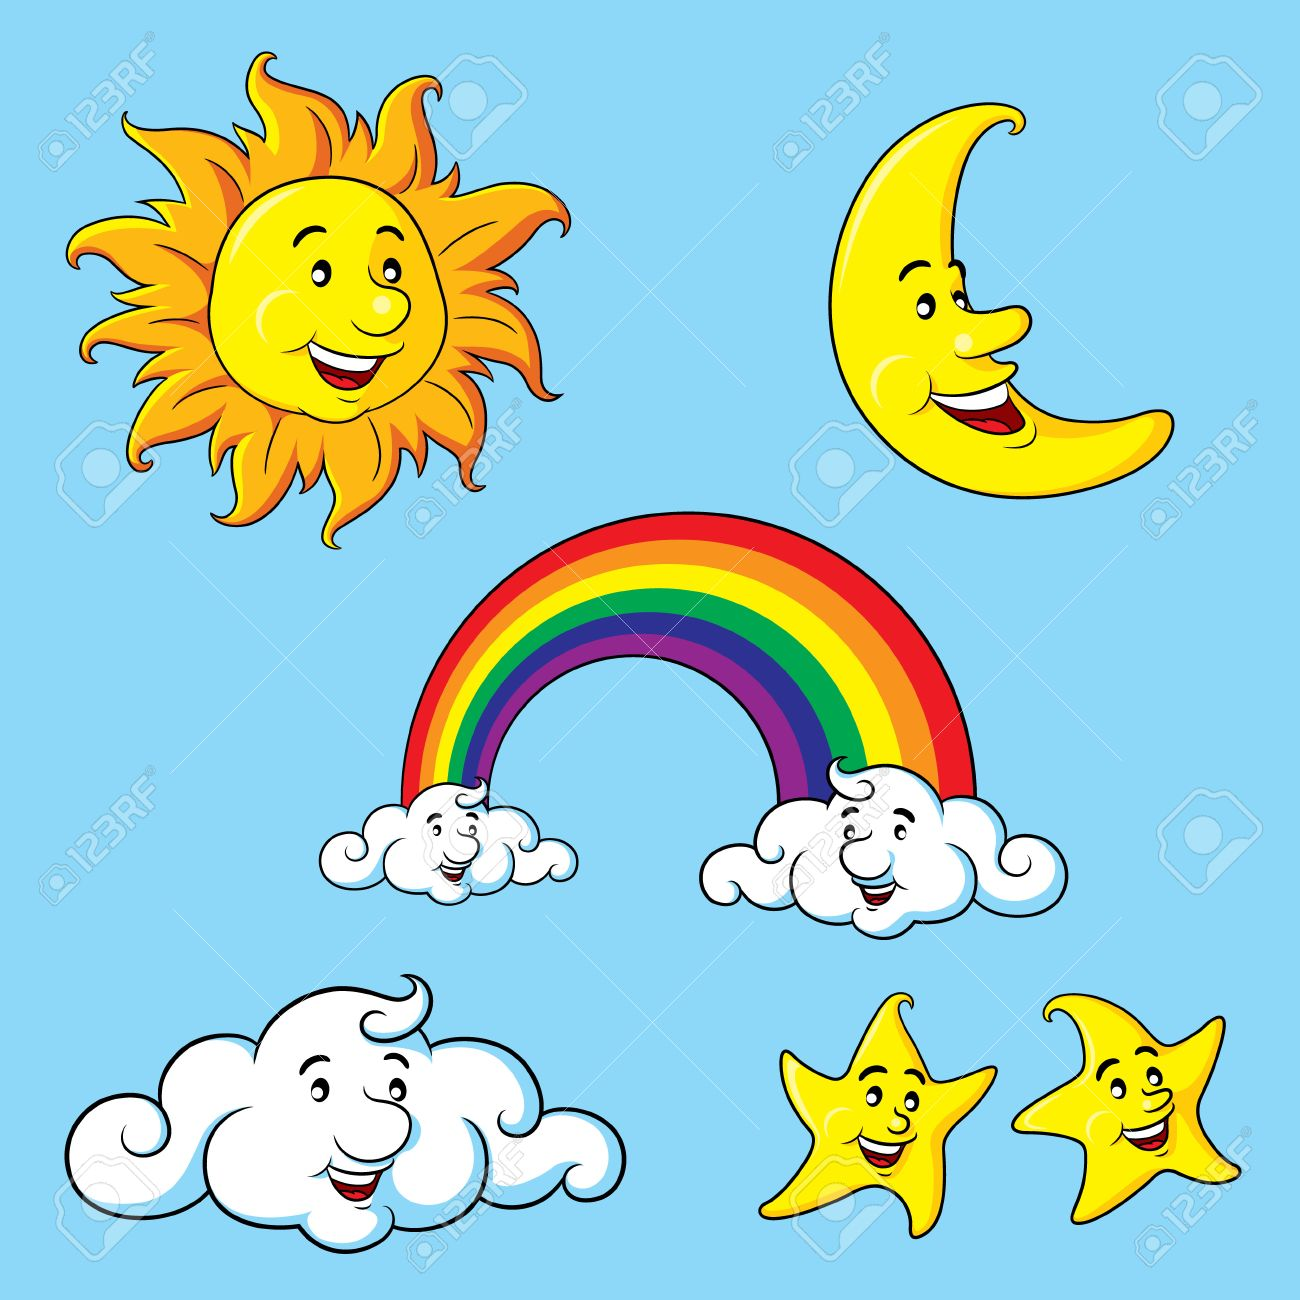 Sun, moon, stars, clouds rainbow cartoon..